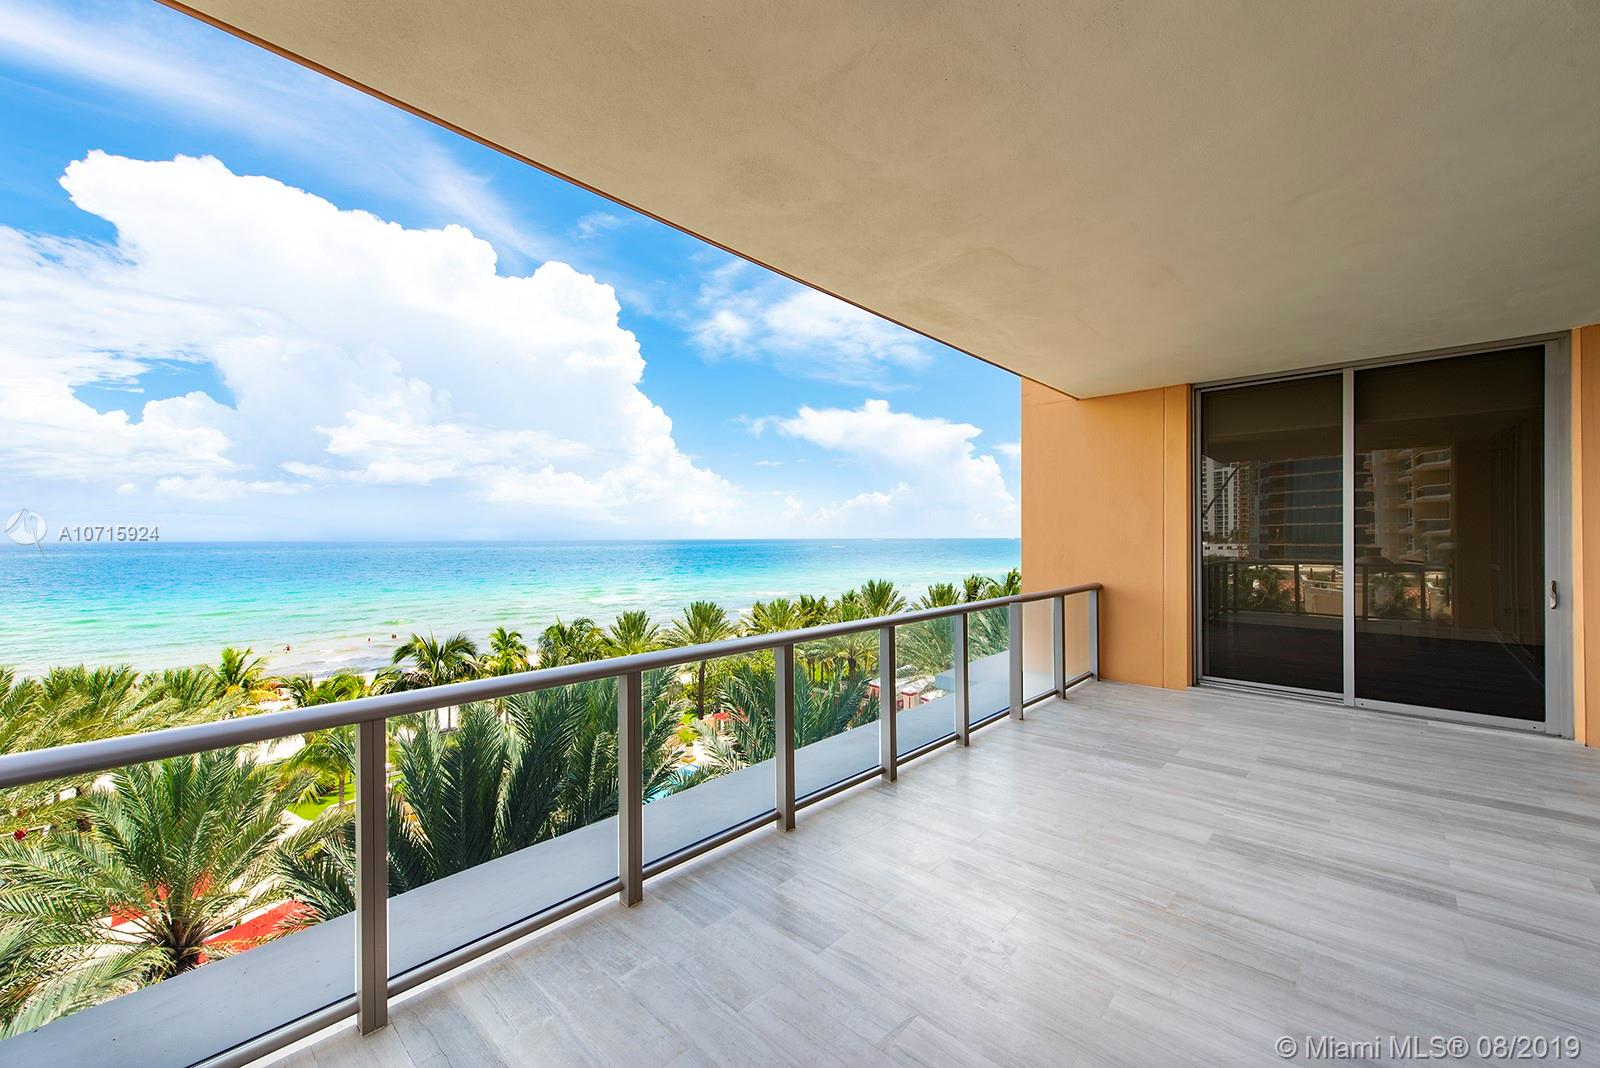 17749 Collins Ave, Sunny Isles Beach, Florida